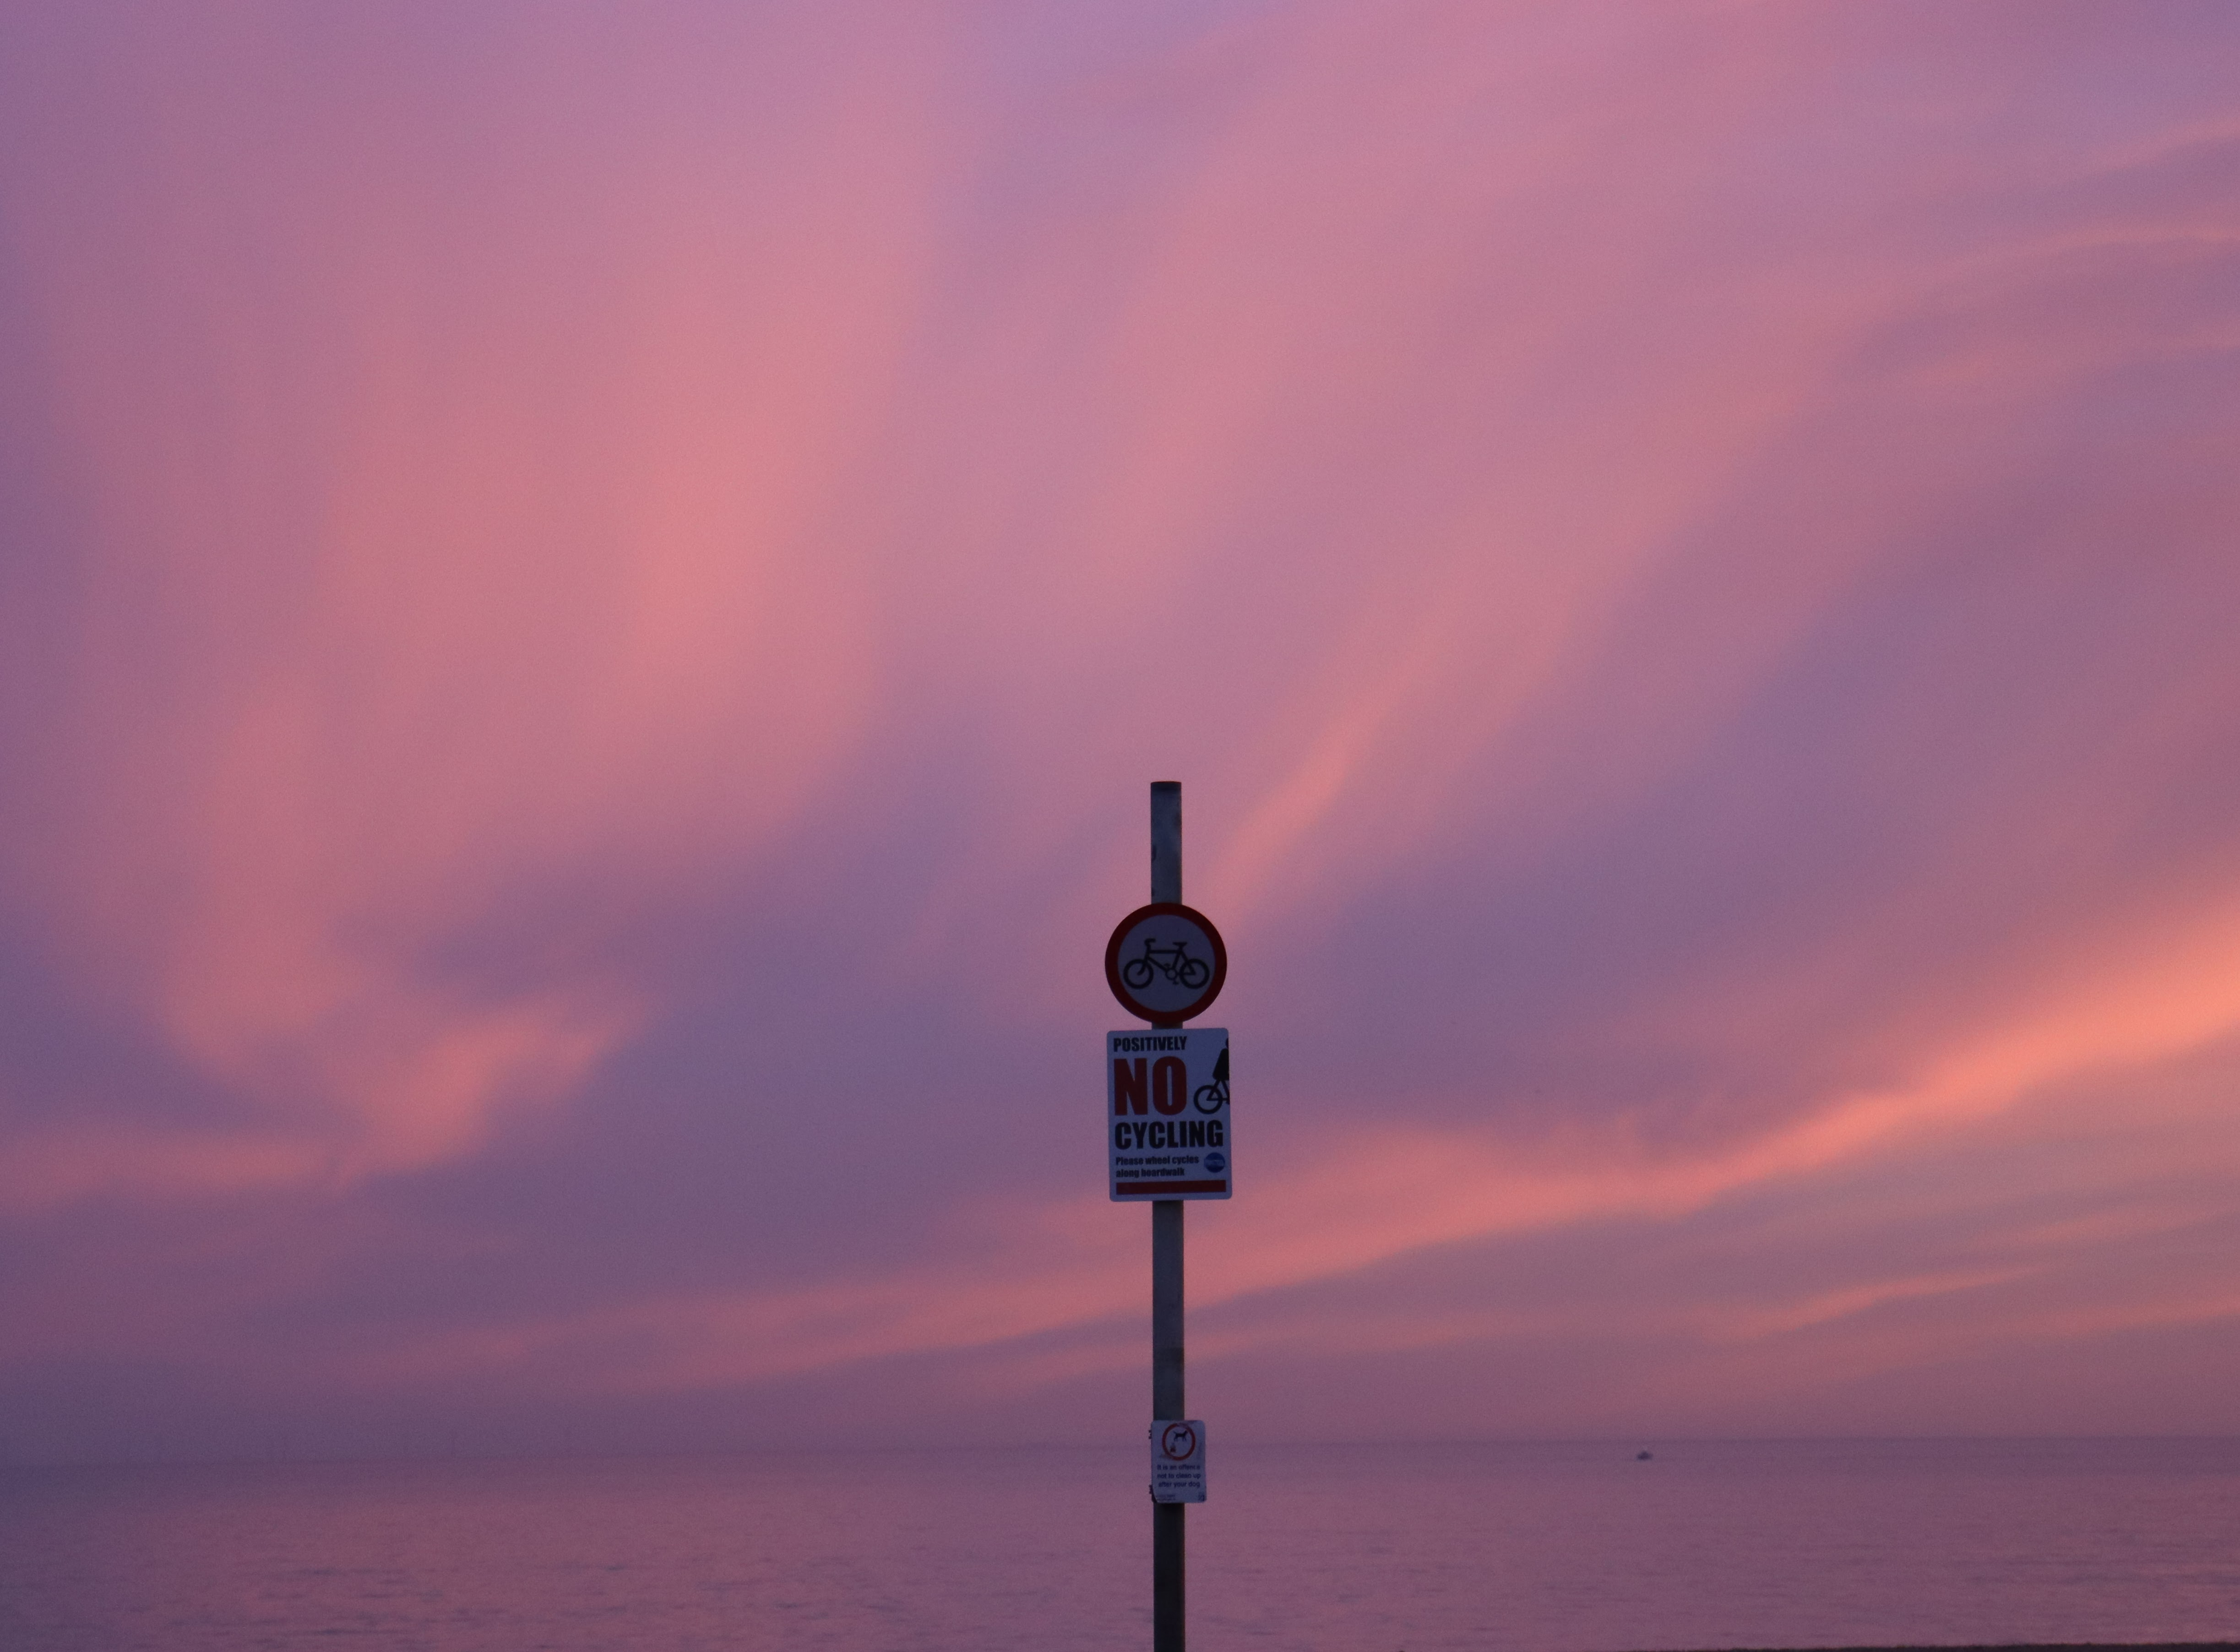 A violet sky with wavy clouds behind a no cycling sign.